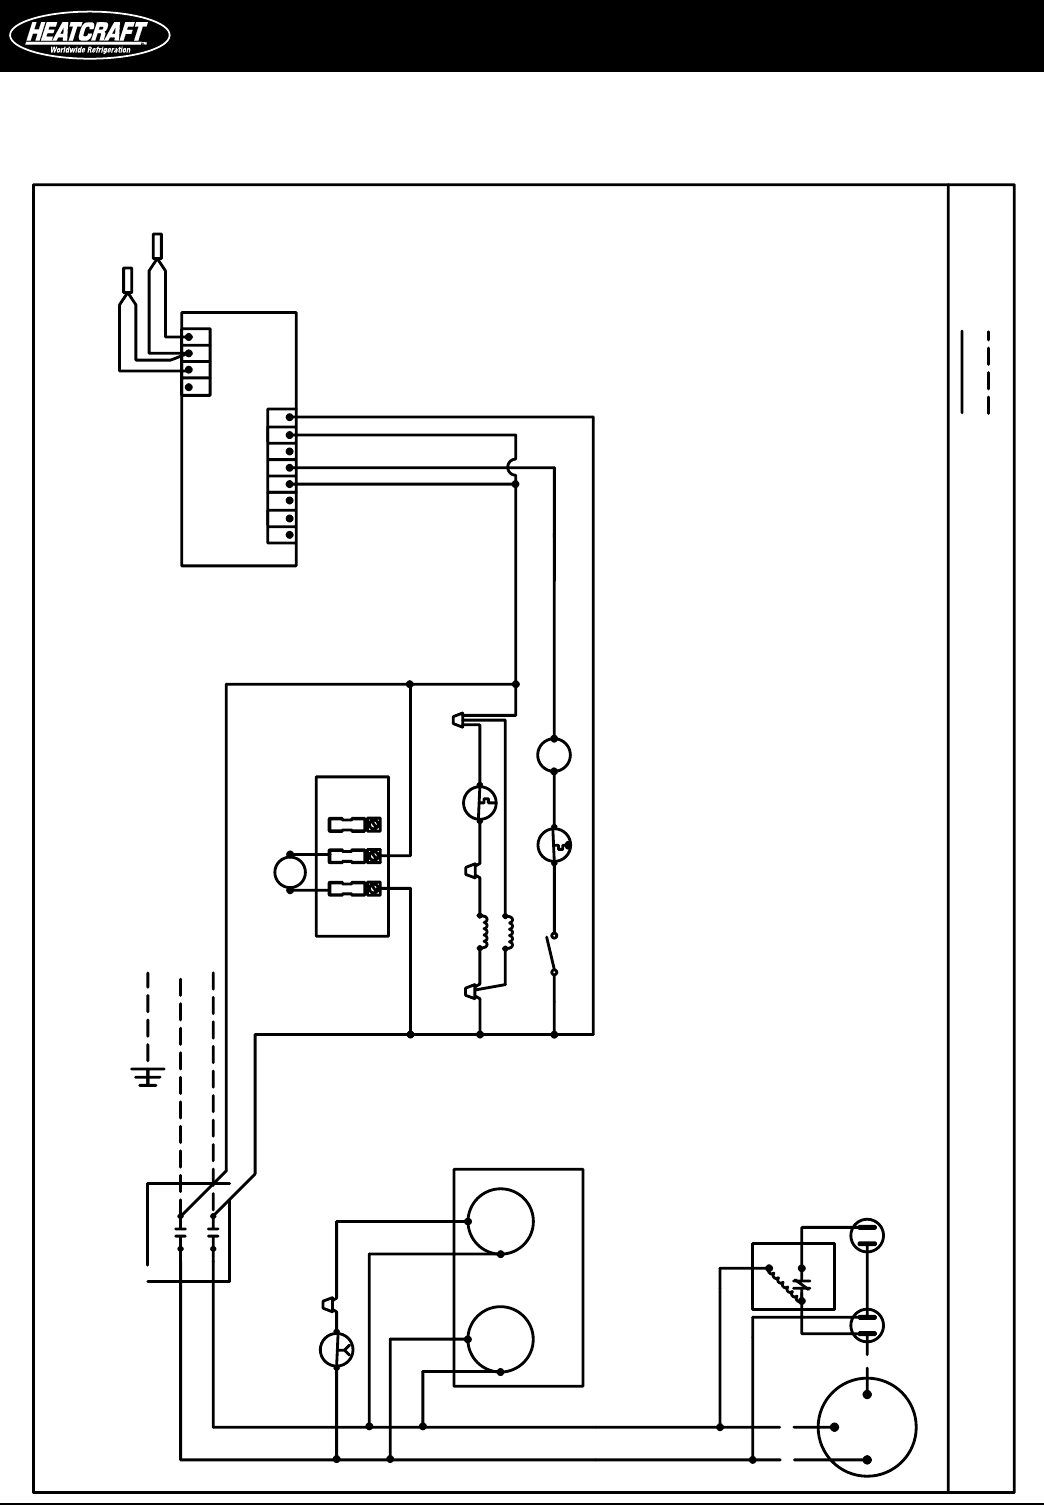 Wiring Diagram For Heatcraft Evaporator - Wiring Diagram Work on